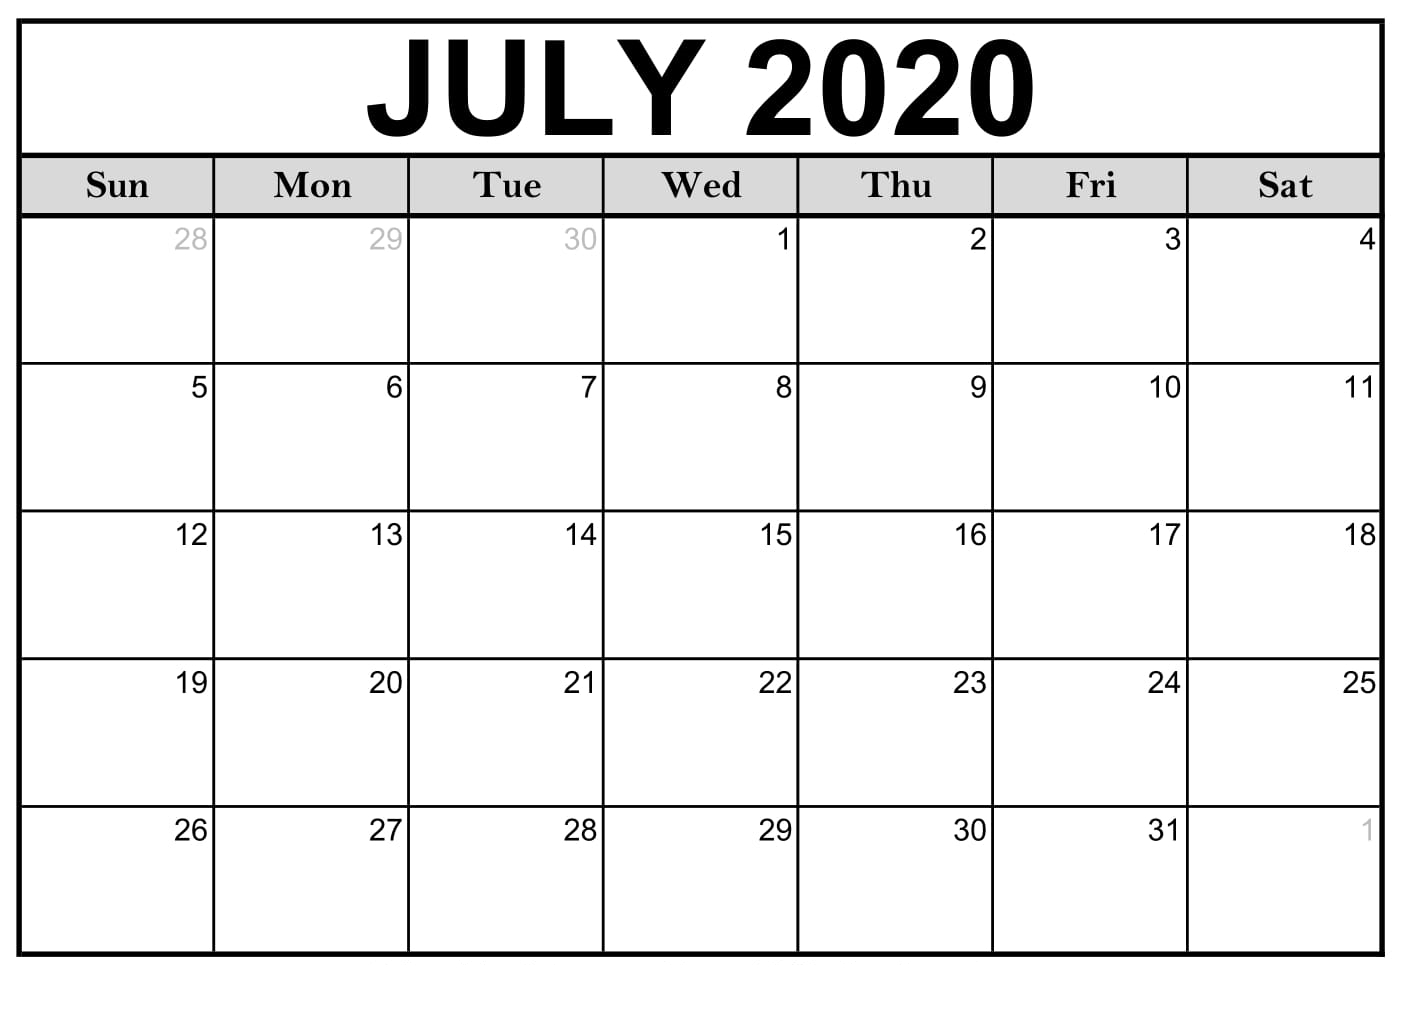 July 2020 Calendar Printable With Notes   12 Month Printable